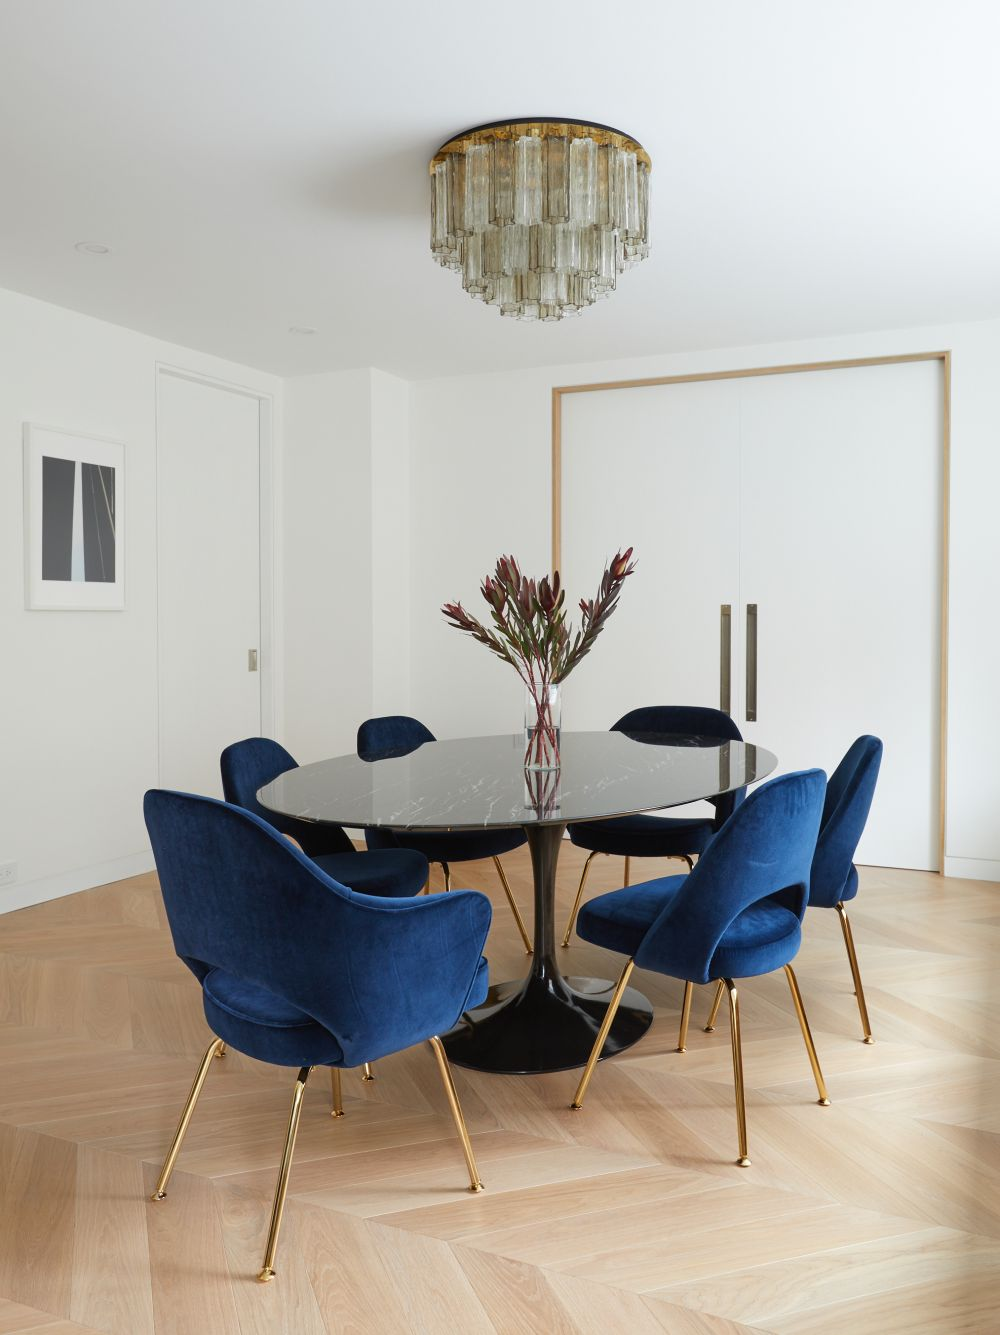 The dining area is furnished with a gorgeous black table with a lacquered finish and stylish blue chairs